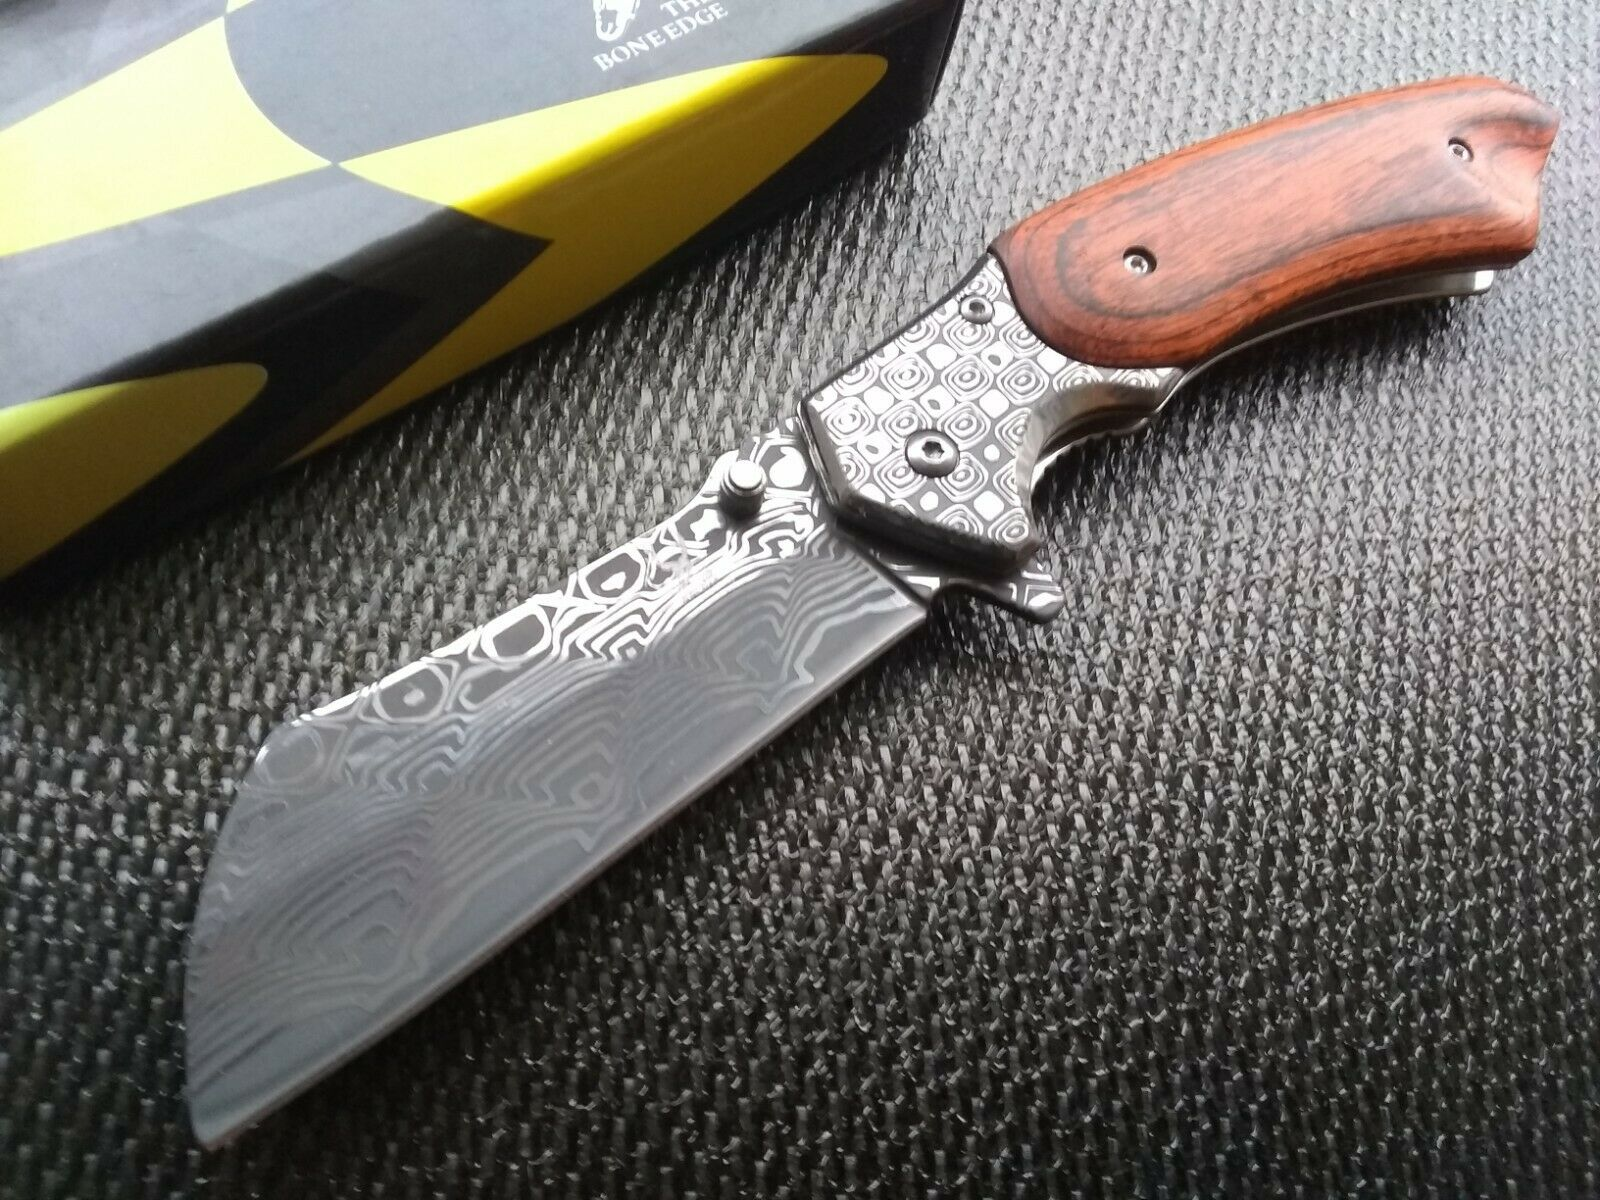 Acid Etch Damascus Pocket Knife Spring Assist Open Sheepsfoot Cleaver Blade EDC